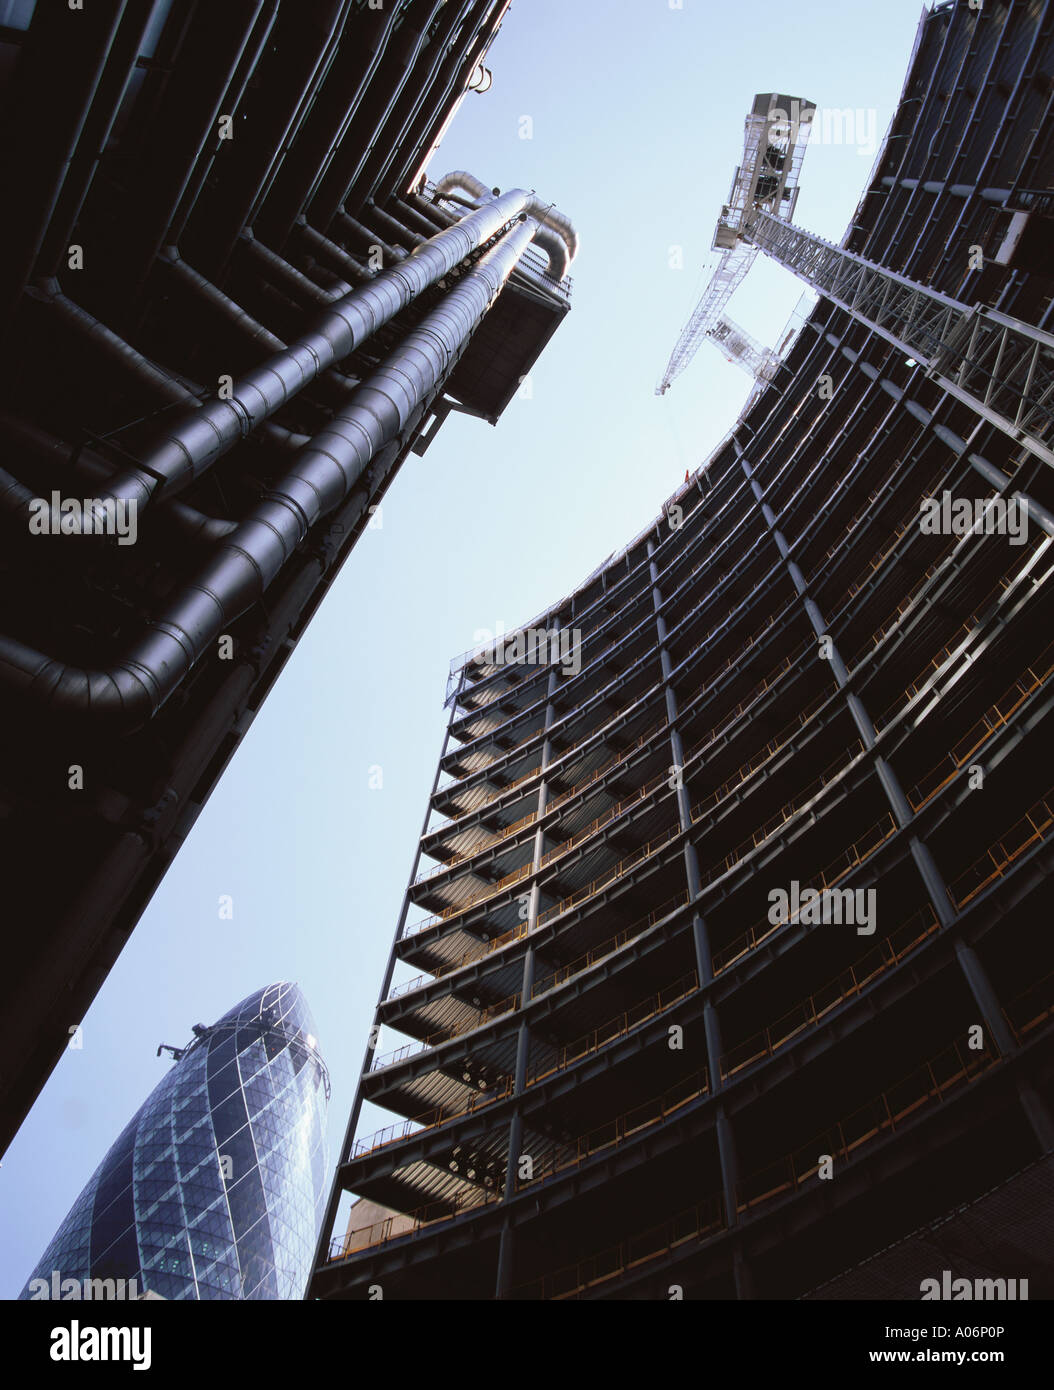 Willis Building under construction 51 Lime Street City of London - Stock Image